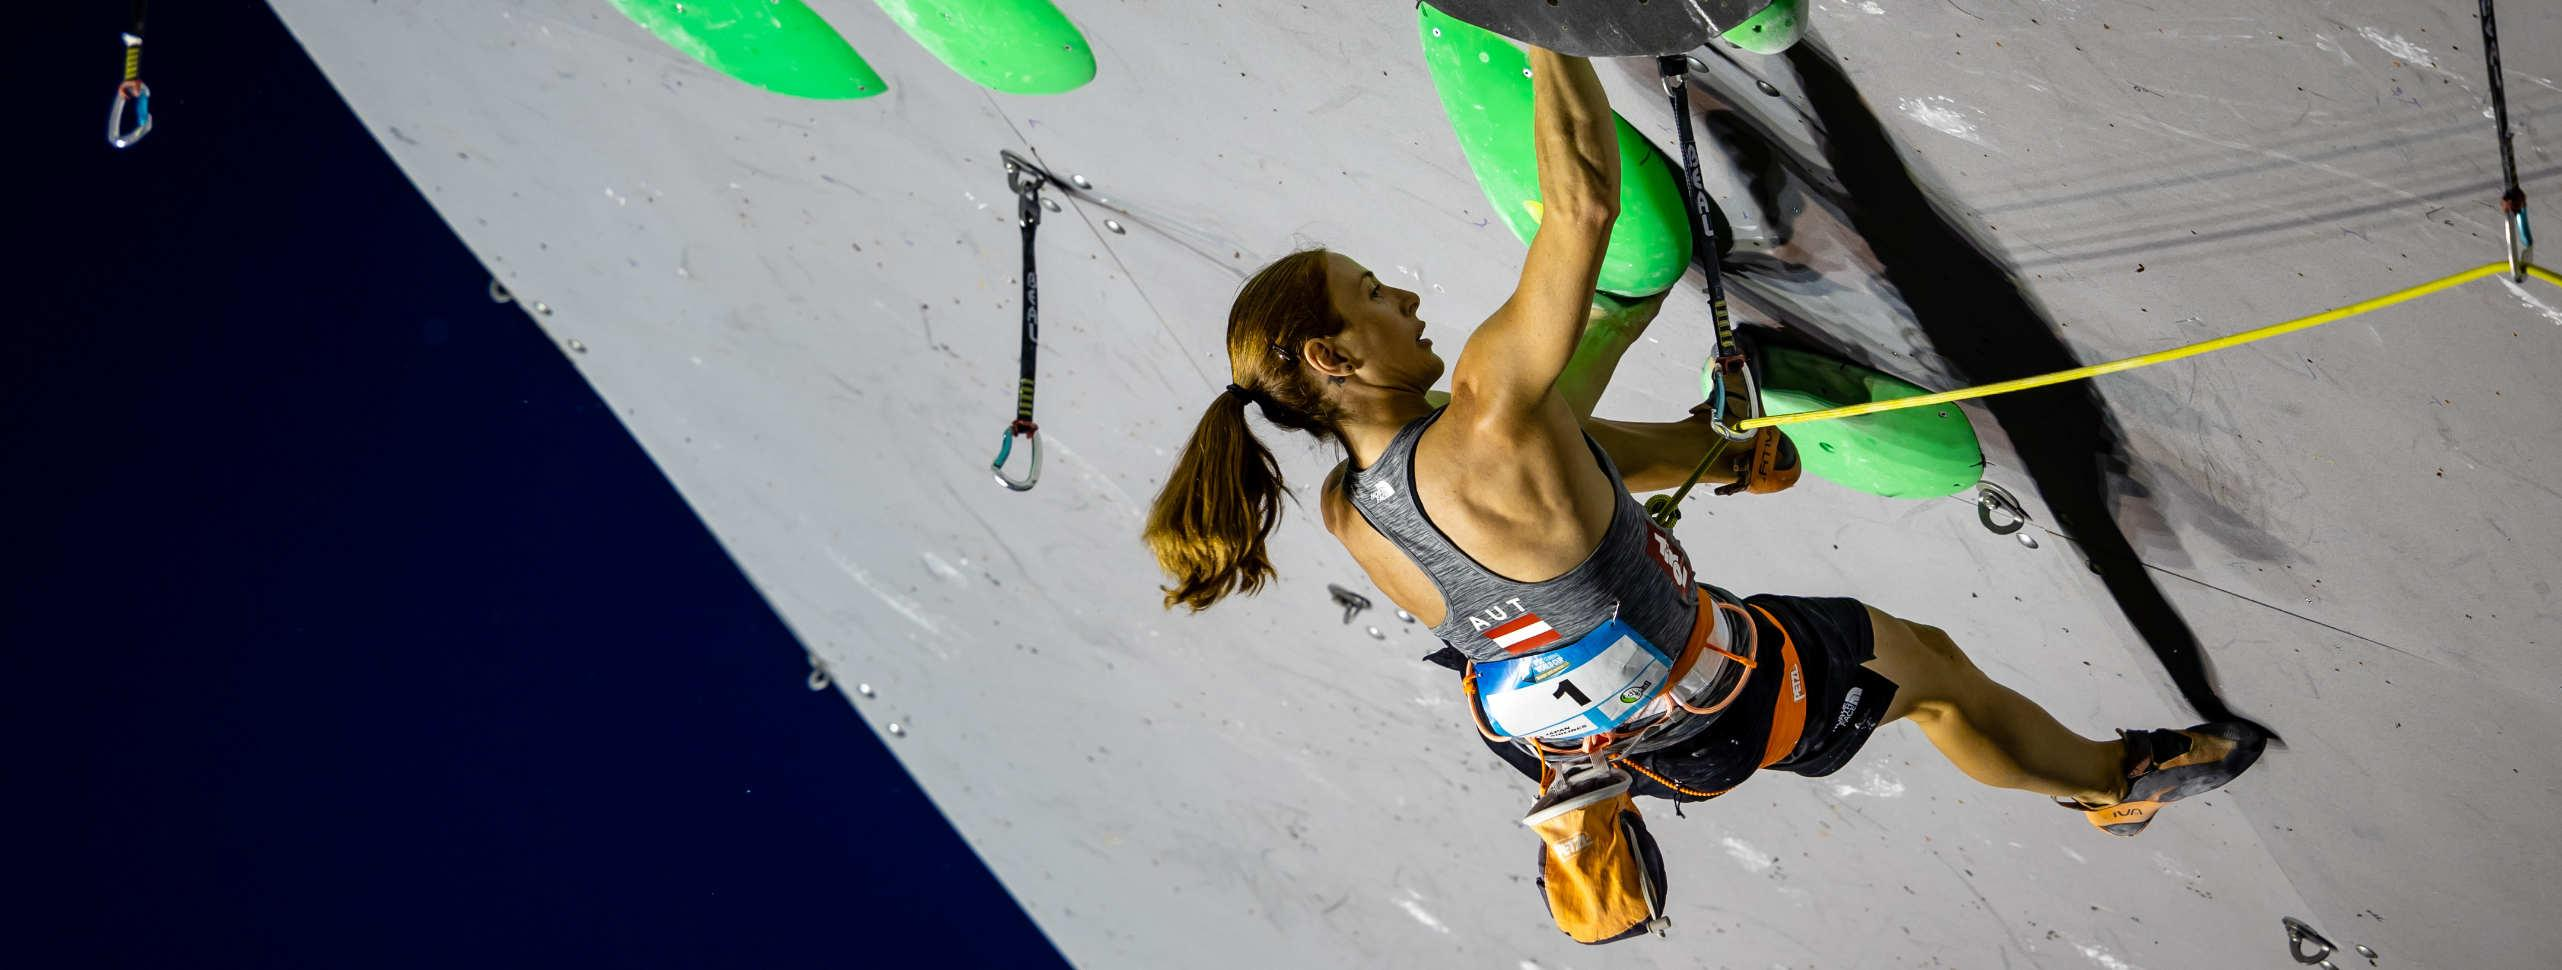 IFSC PARACLIMBING WORLD CUP, BOULDER AND LEAD WORLD CUP IN INNSBRUCK CONFIRMED